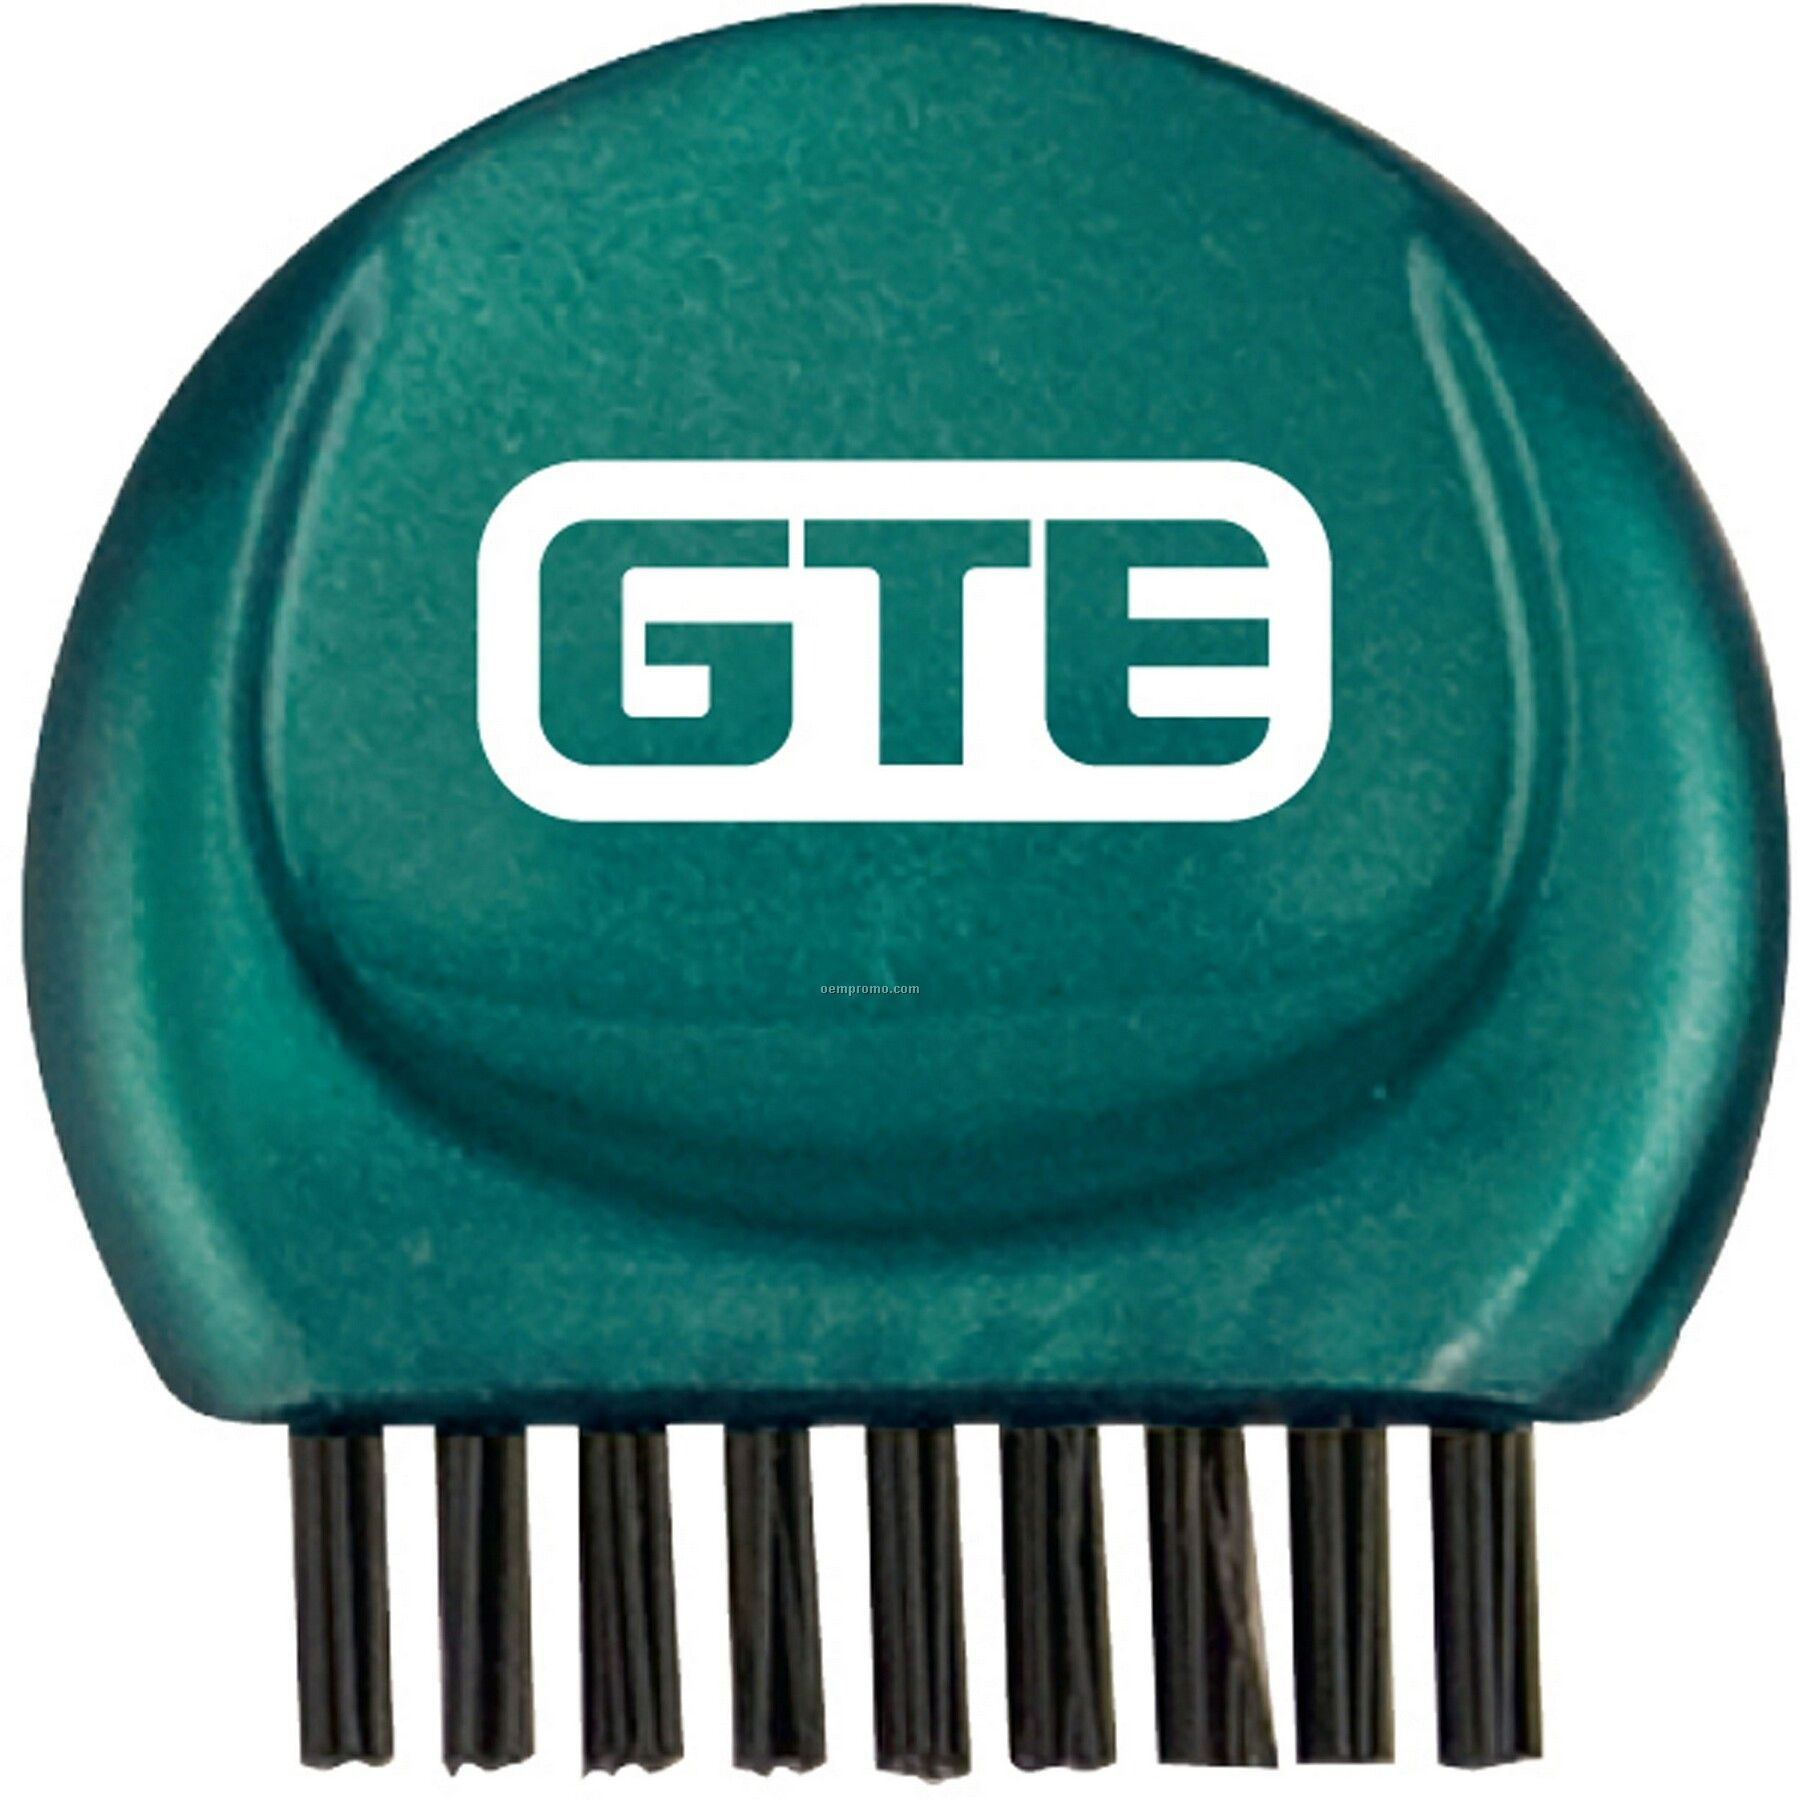 Golf Cleaning Brush, Stiff Bristles To Clean Golf Clubs--5 Day Production